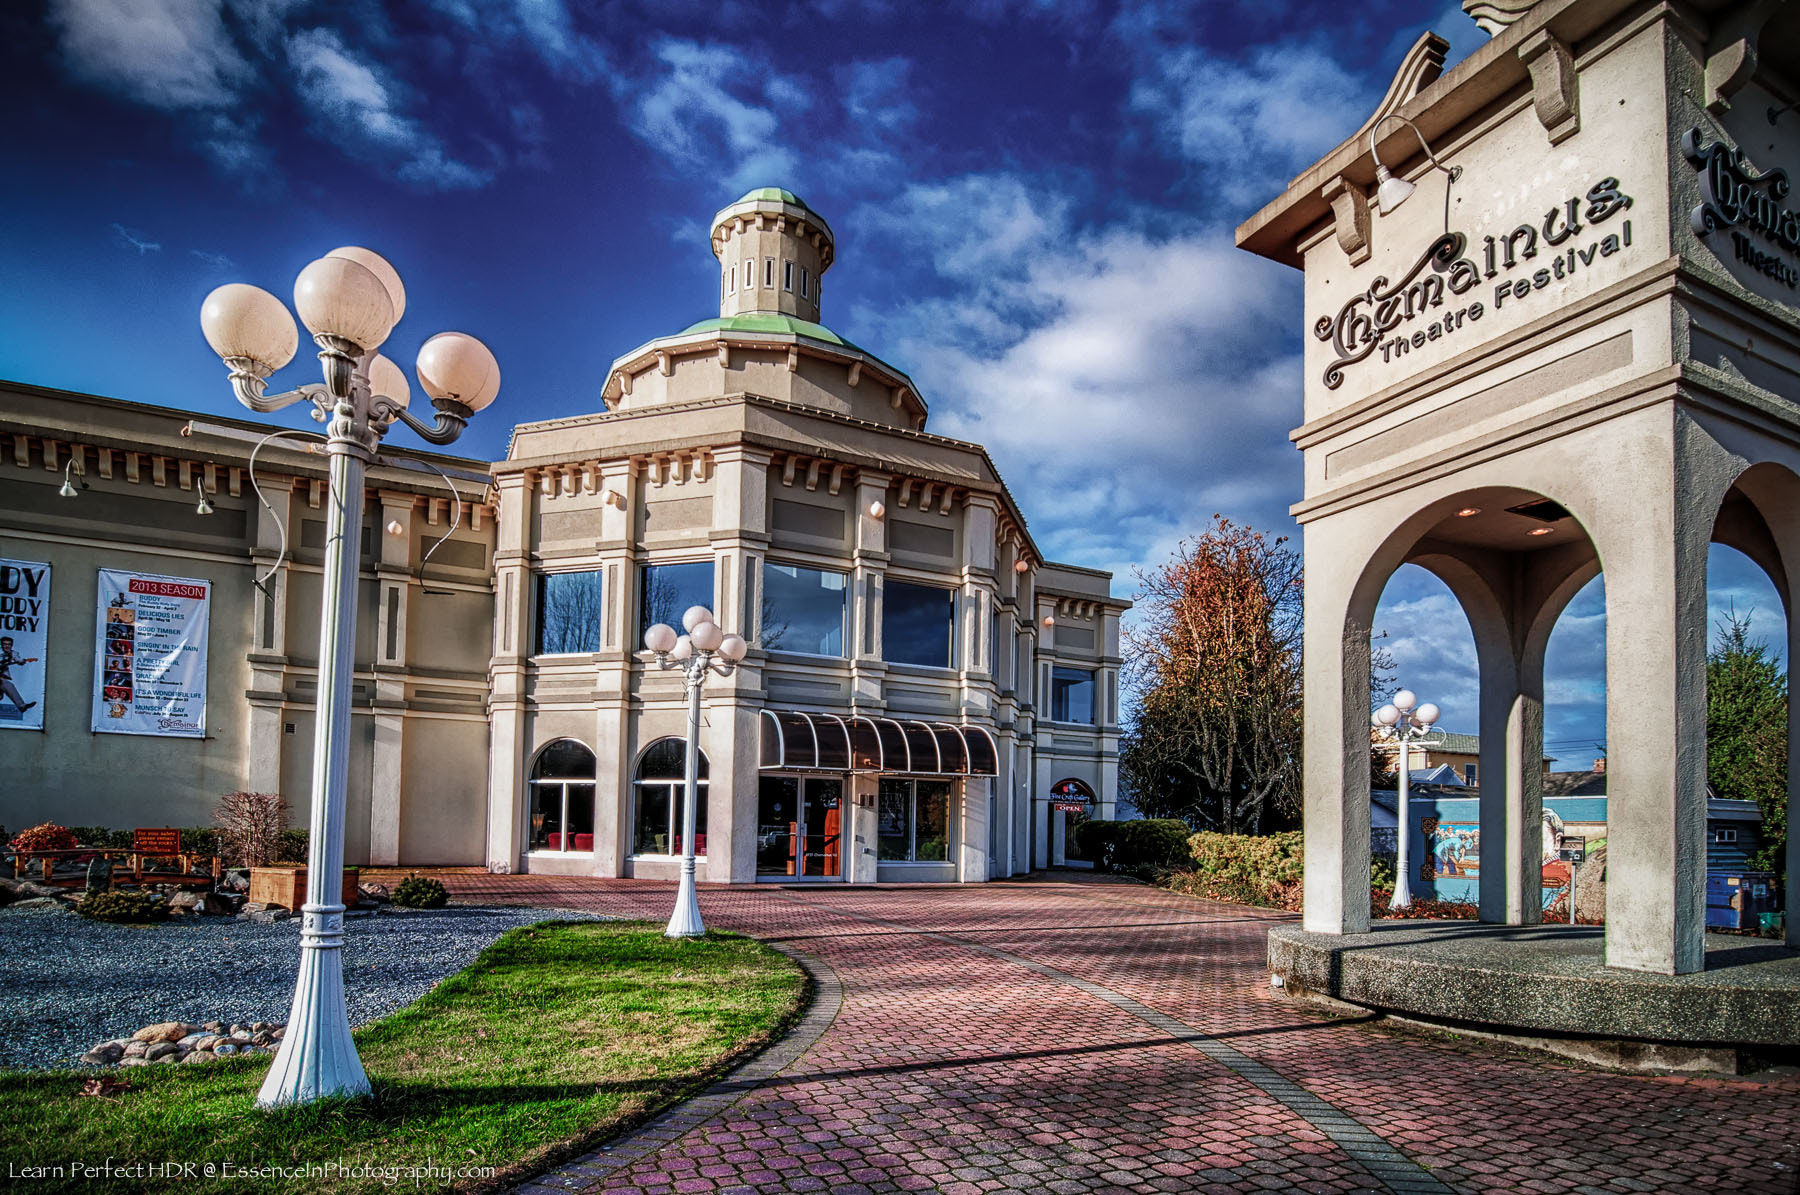 Photograph Chemainus Theater, B.C. Canada by Captain Photo on 500px